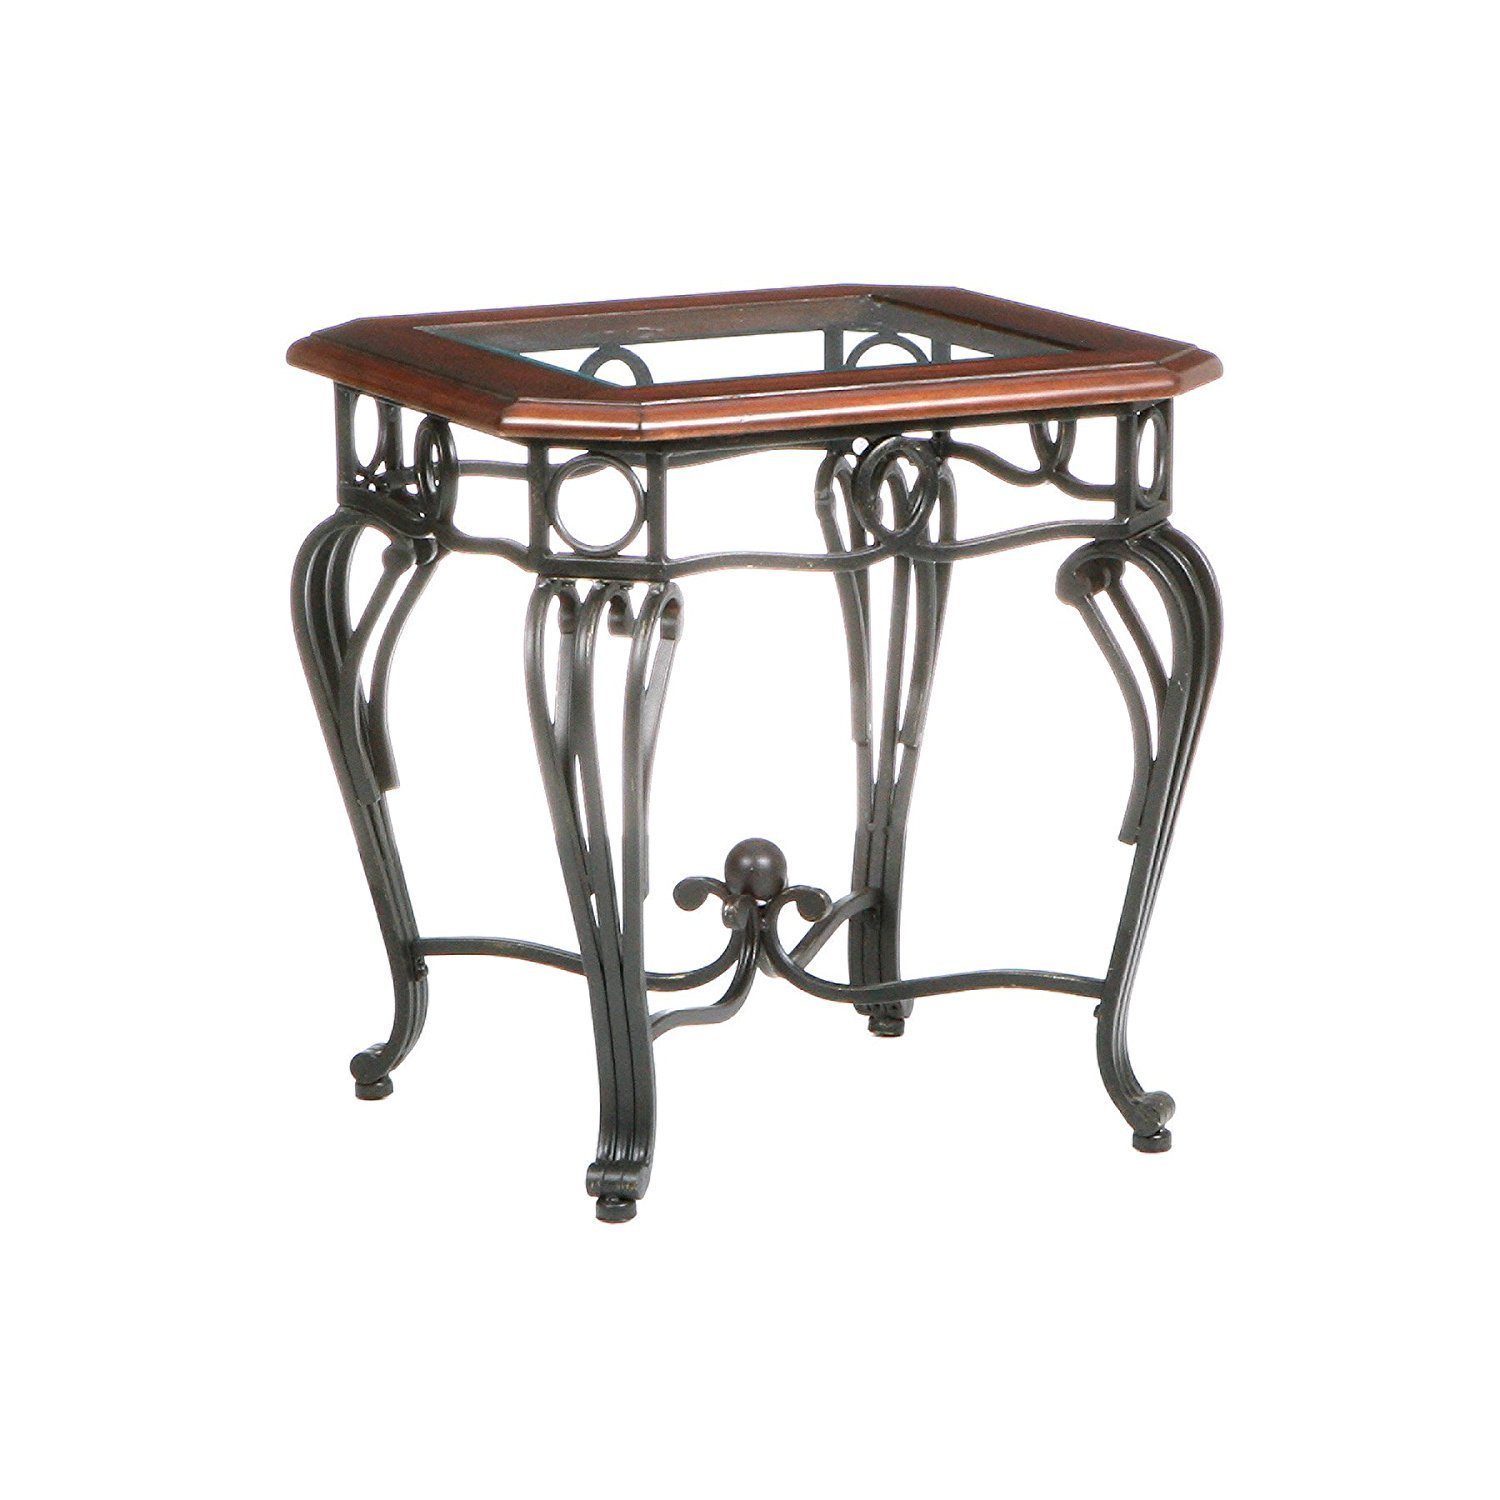 Iron Side Tables For Living Room Wrought Iron End Tables With Glass Tops Home Furniture